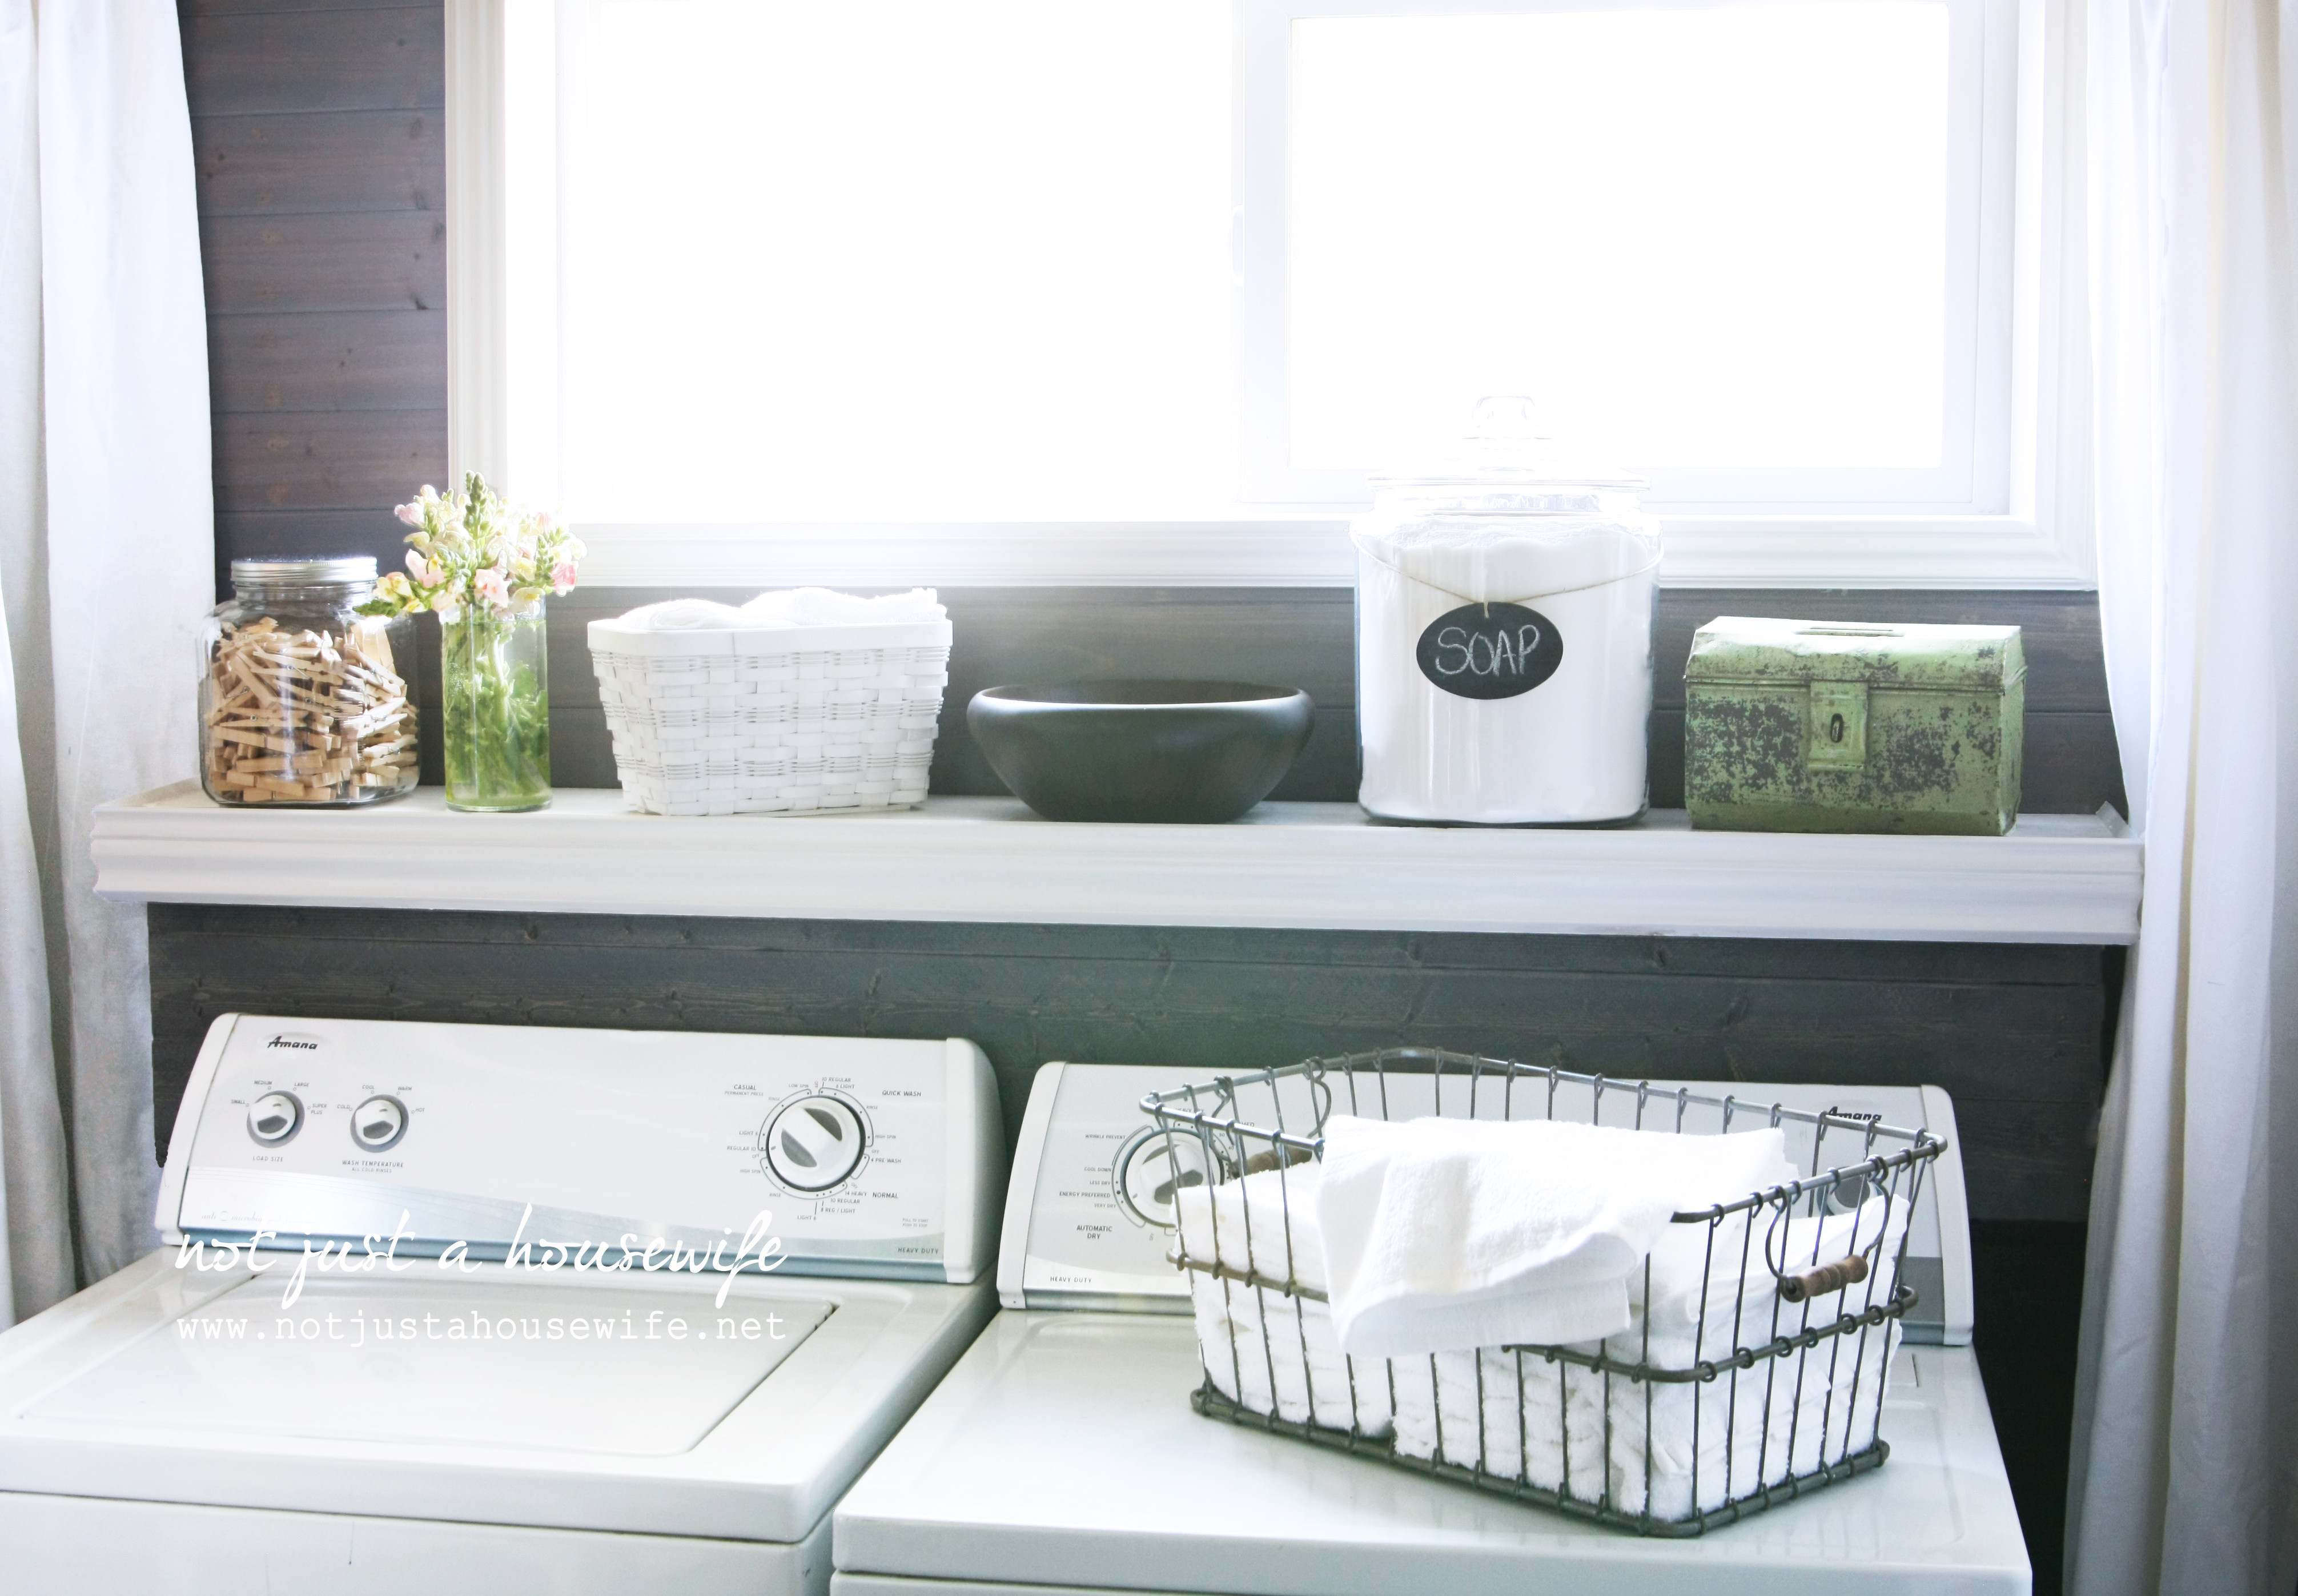 Best ideas about Laundry Room Shelf . Save or Pin Laundry Room Progress Now.